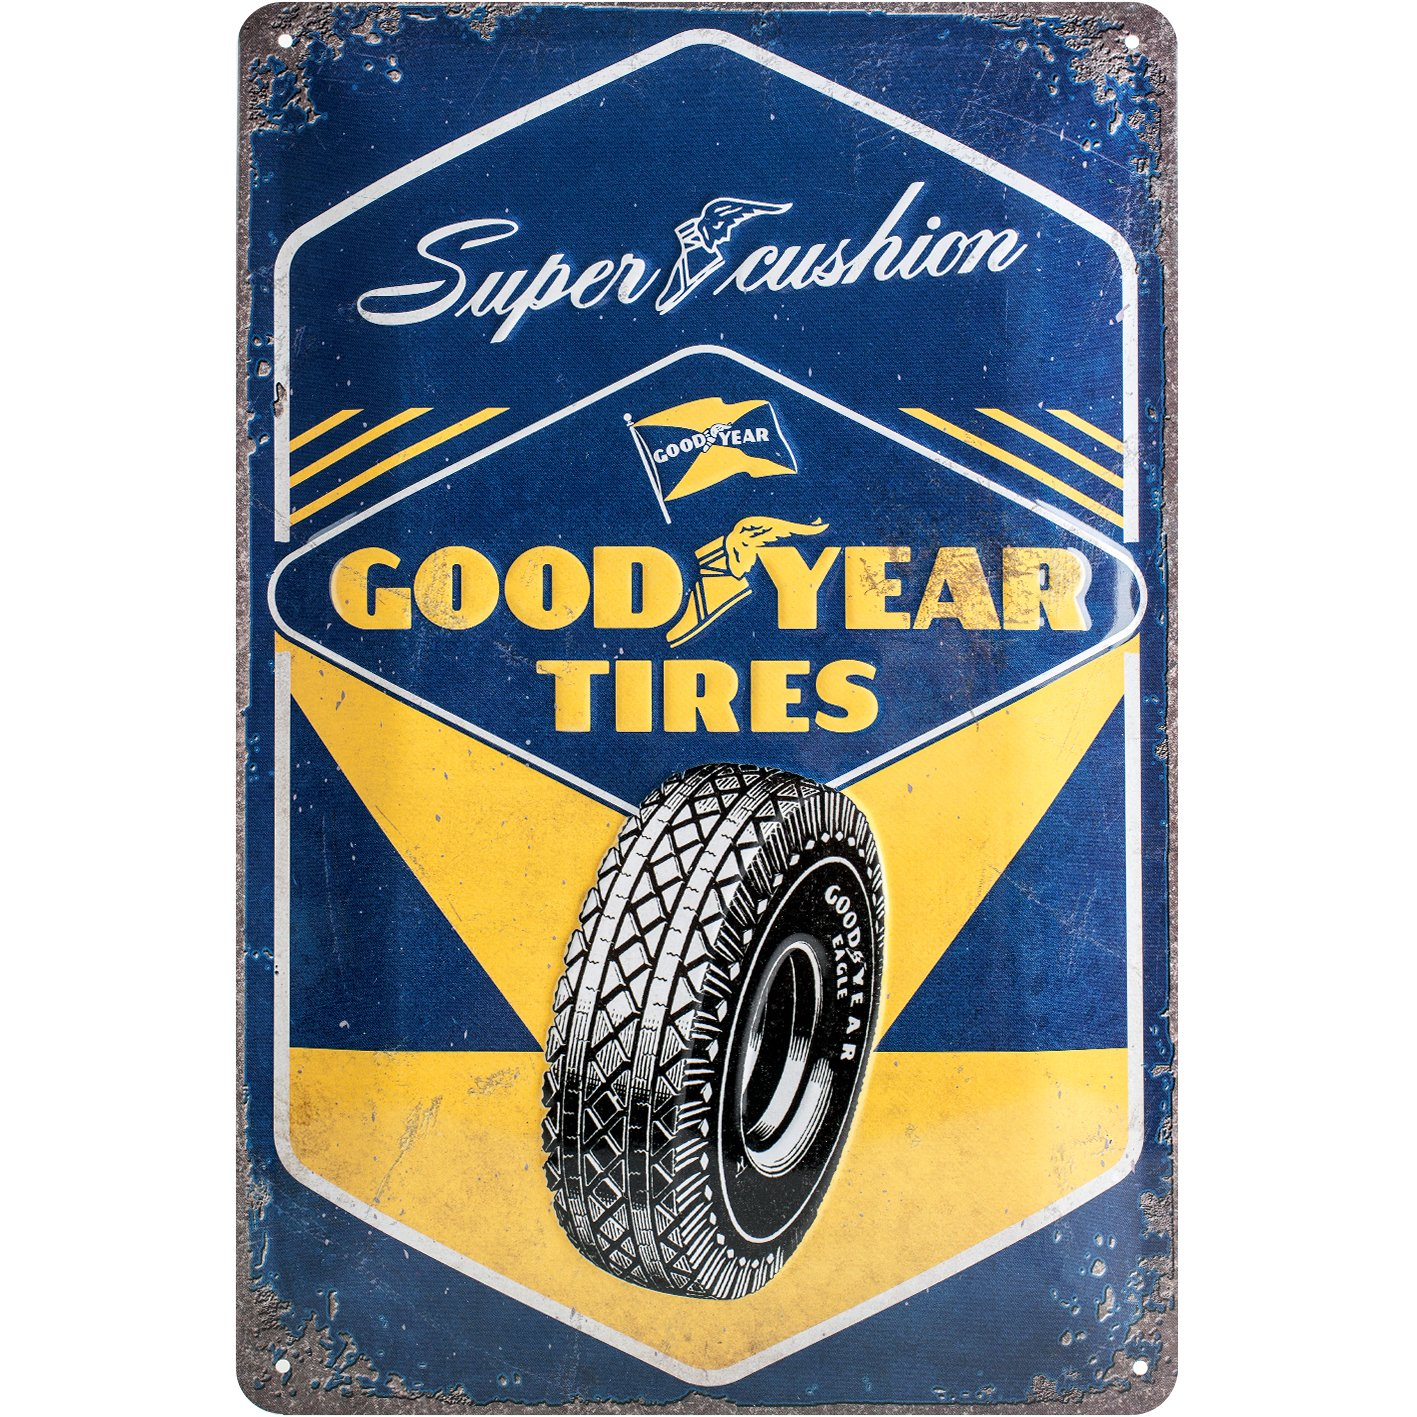 GOOD YEAR TIRES VINTAGE RETRO METAL TIN PLAQUE GARAGE SIGN UK SELLER